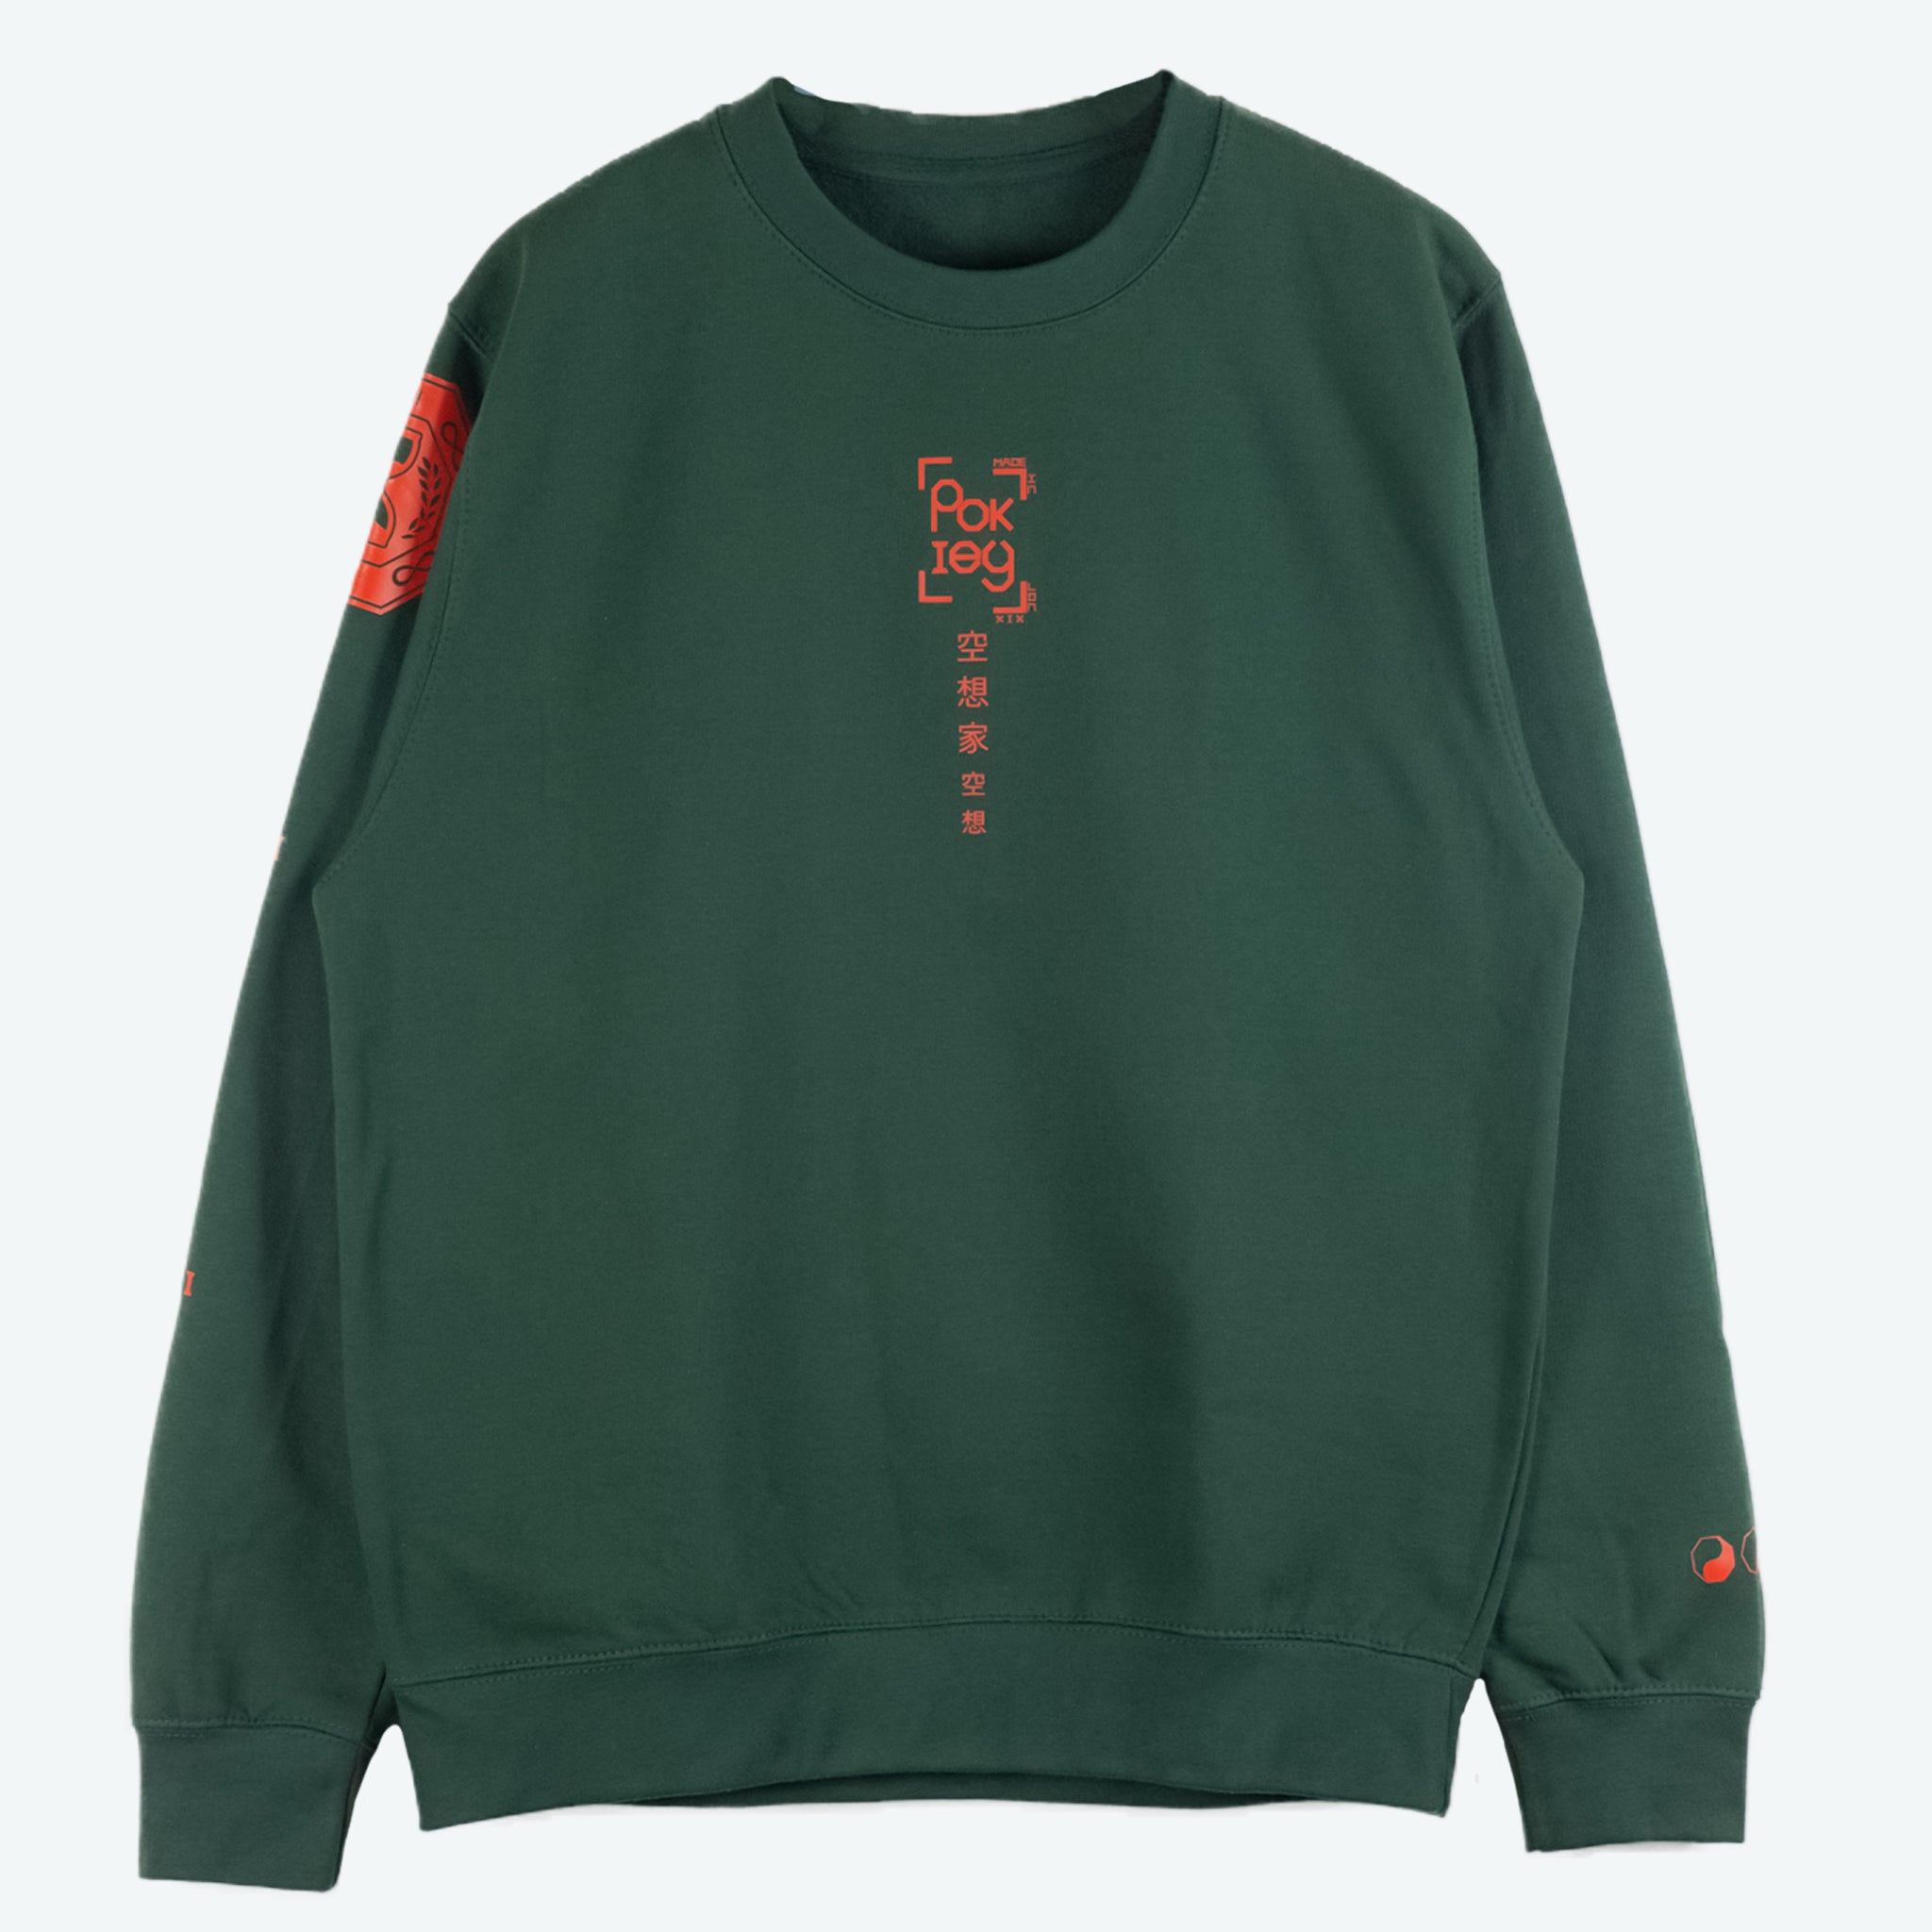 Forest Green Sweatshirt